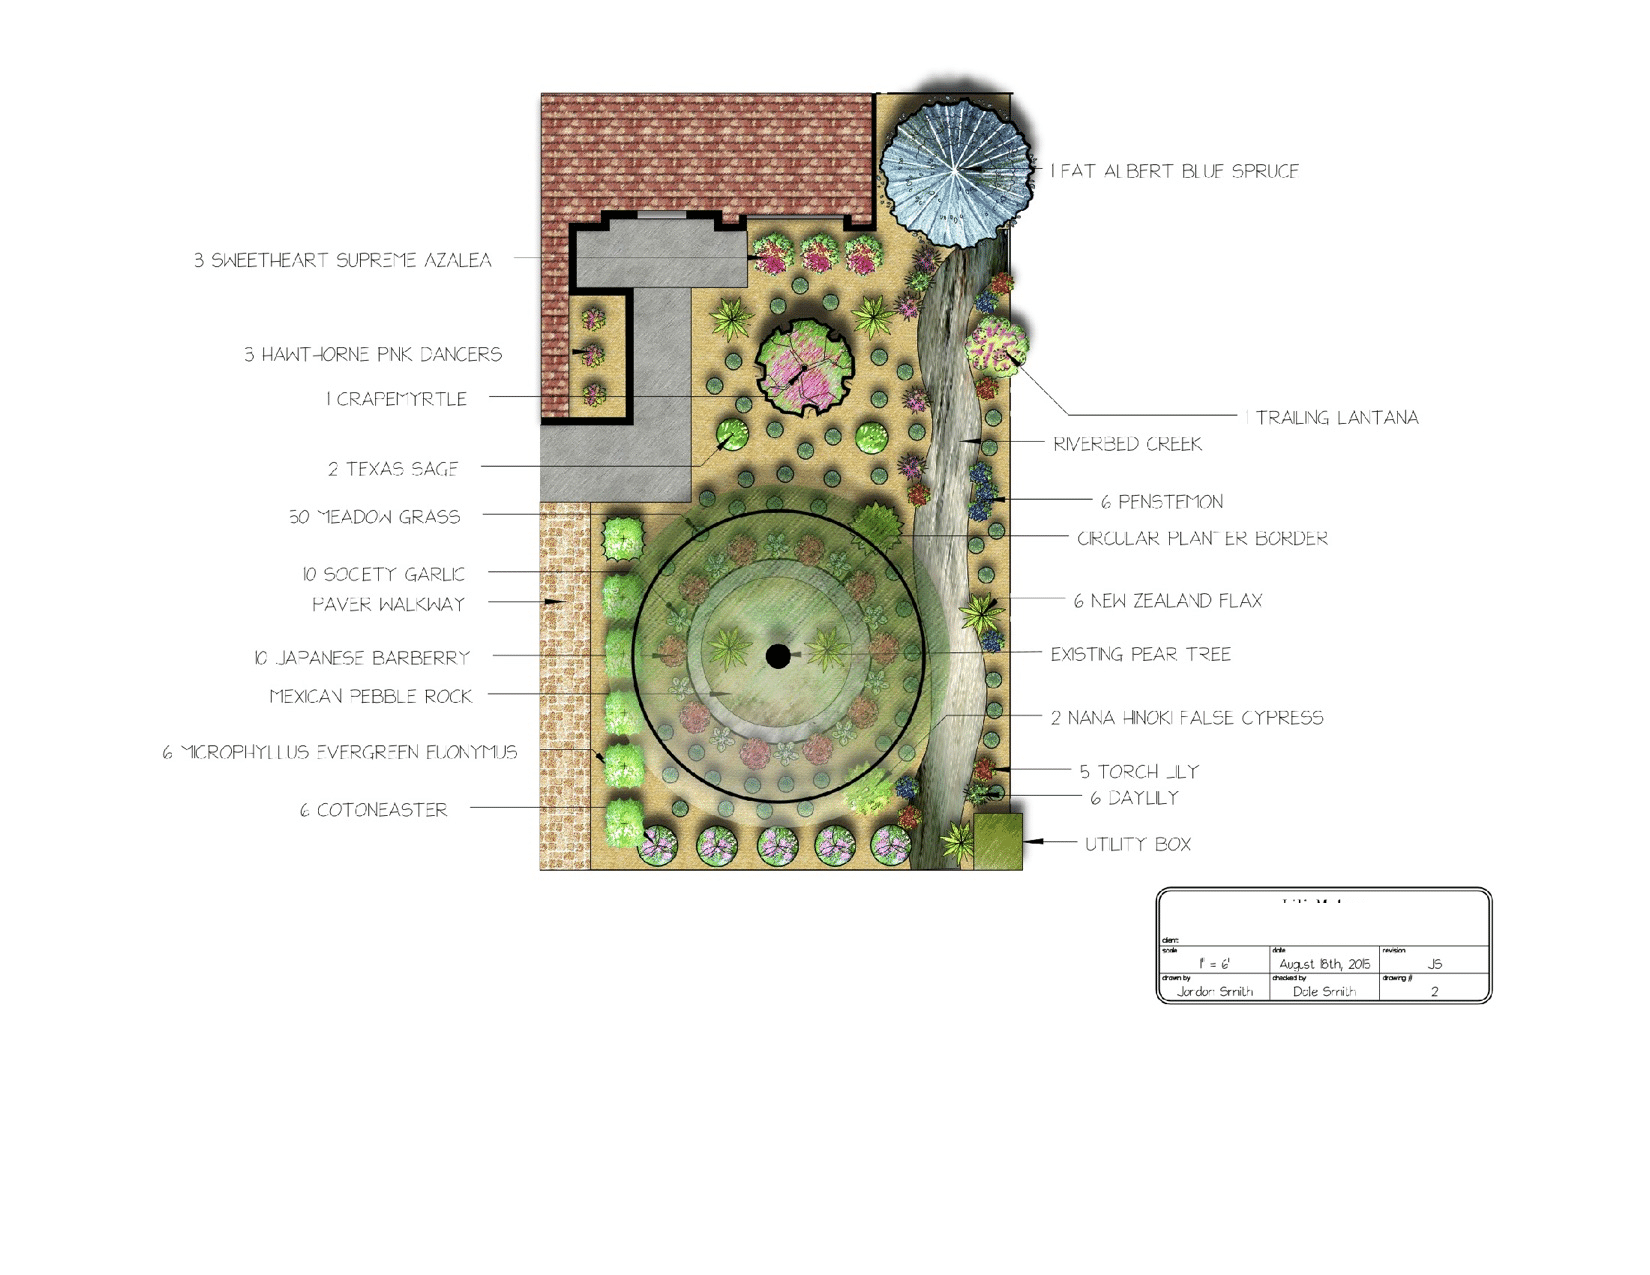 Sacramento Landscape Design Installation Tree Services Care French Drain Diagram How To A Yard Or Lawn Drought Proof Conversion